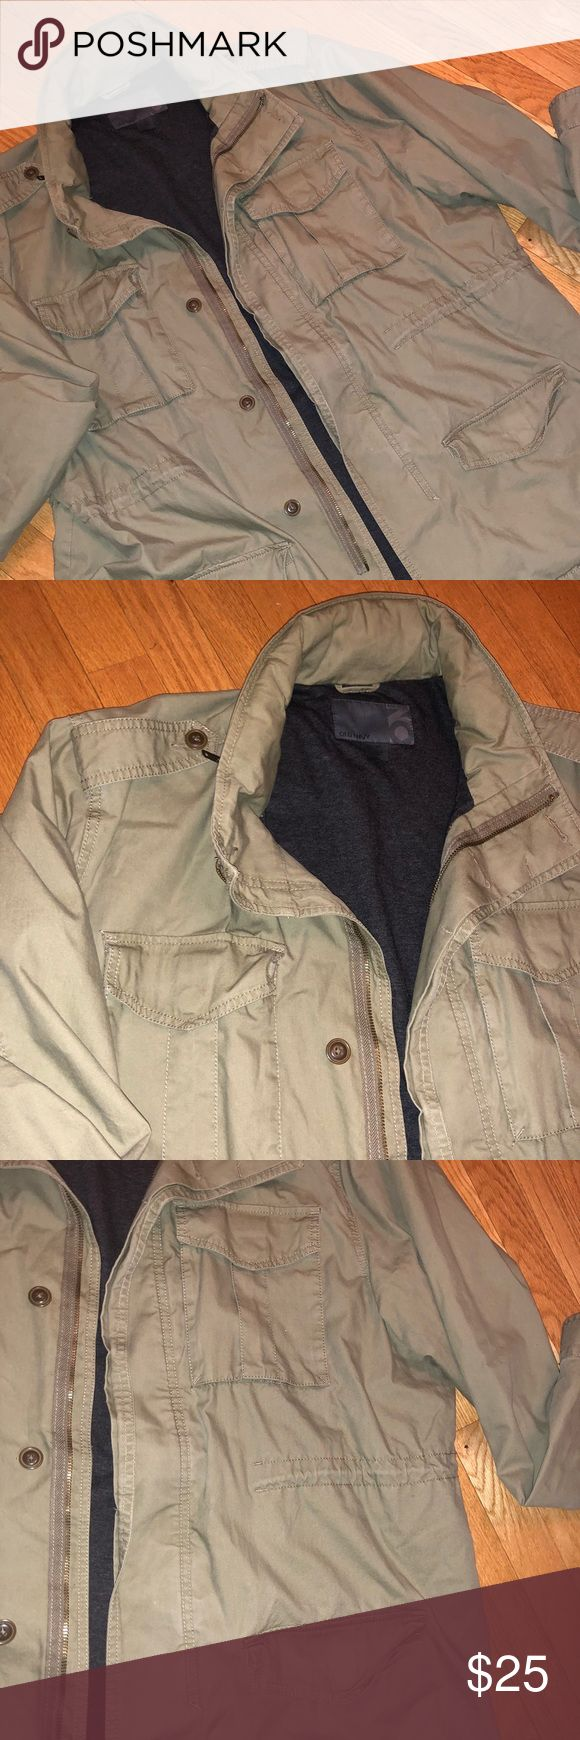 🆕Olive Green Military Style Hooded Jacket XXL Like new condition. Olive Green military jacket w/ zip hood feature at the back of collar- nice to be able to roll it up when not needed/ in use. Inner light fleece/cotton lining in charcoal gray. Ties on the inner parts of both sides of the jacket above the pockets for adjusting, if you choose. Love this jacket- bought it for him, he wore it like twice. Clothes addict...🤷🏻‍♂️🙈👟 Old Navy Jackets & Coats Military & Field